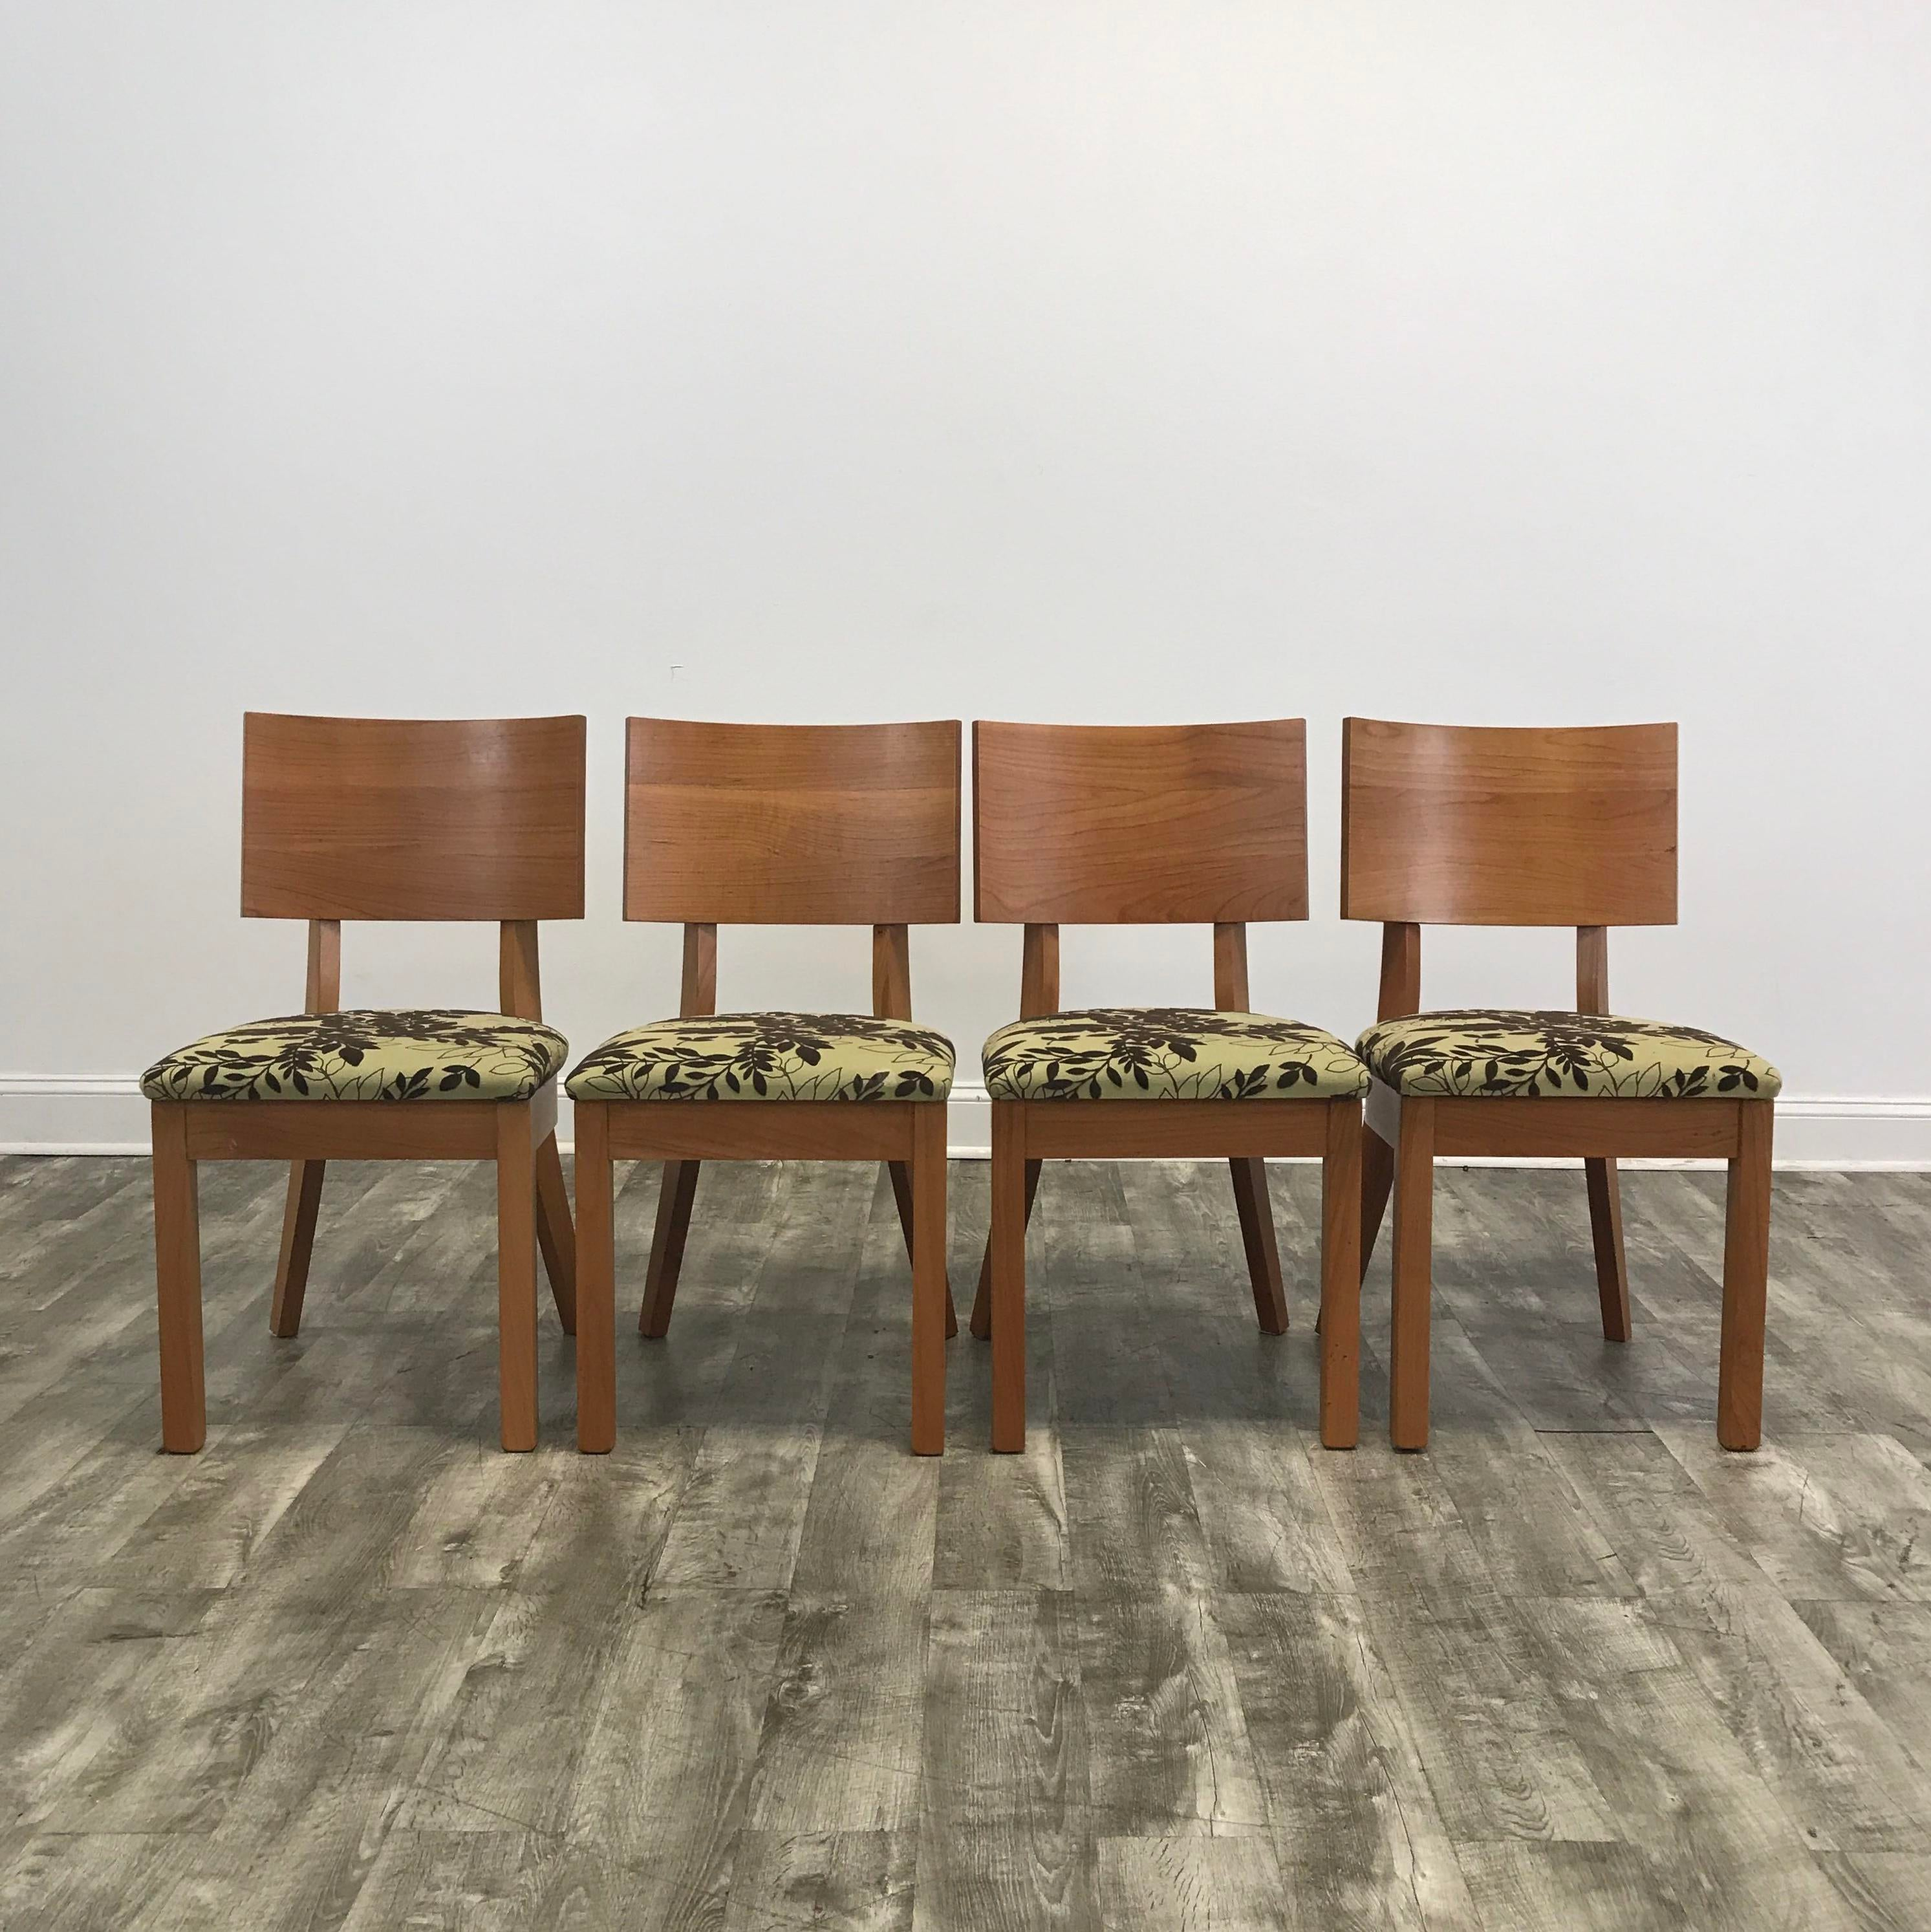 Arhaus Green Patterned Dining Chairs   Set Of 4   Image 2 Of 4